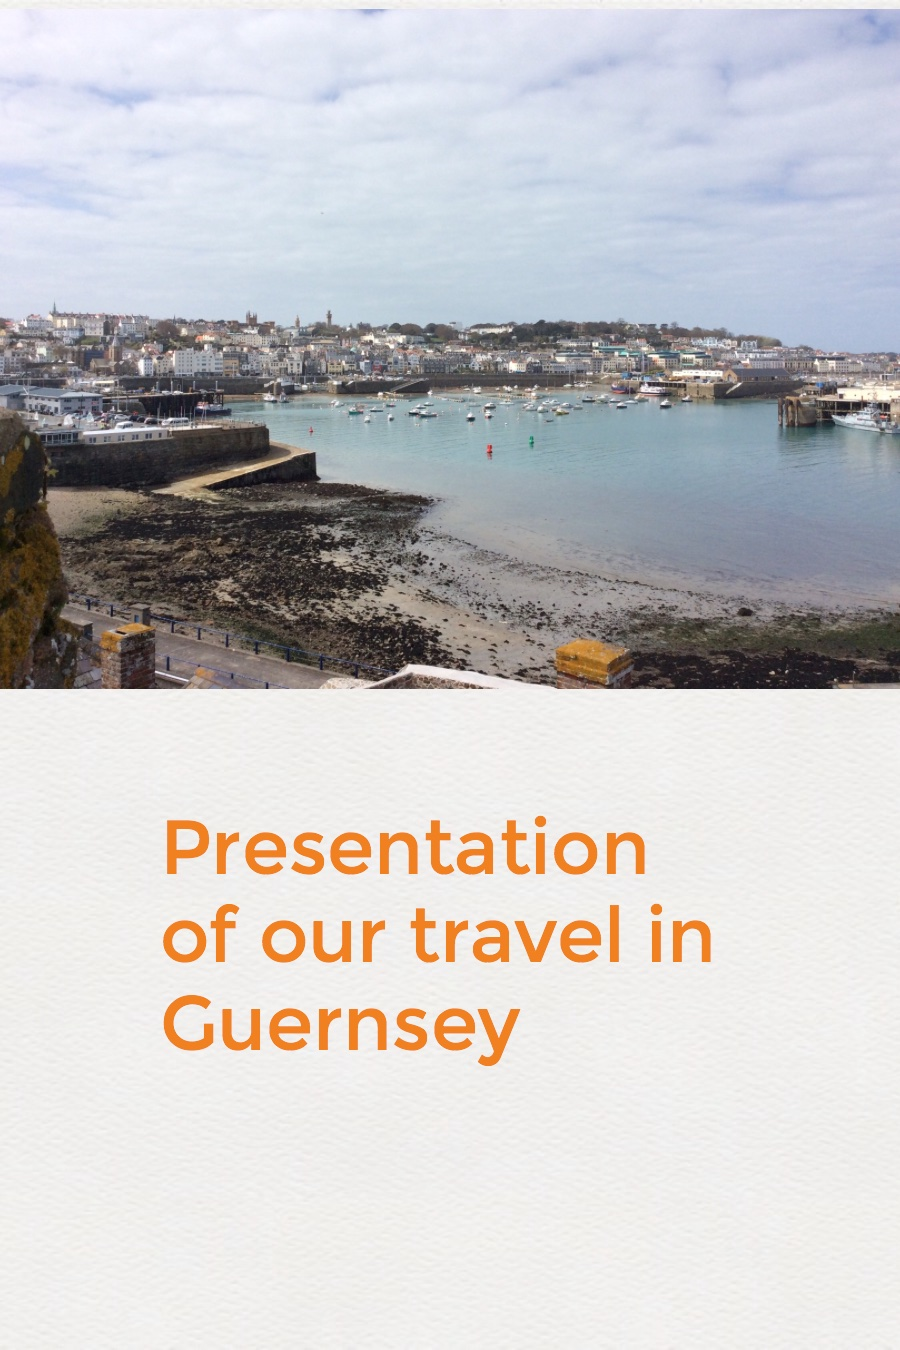 Our travel in Guernsey